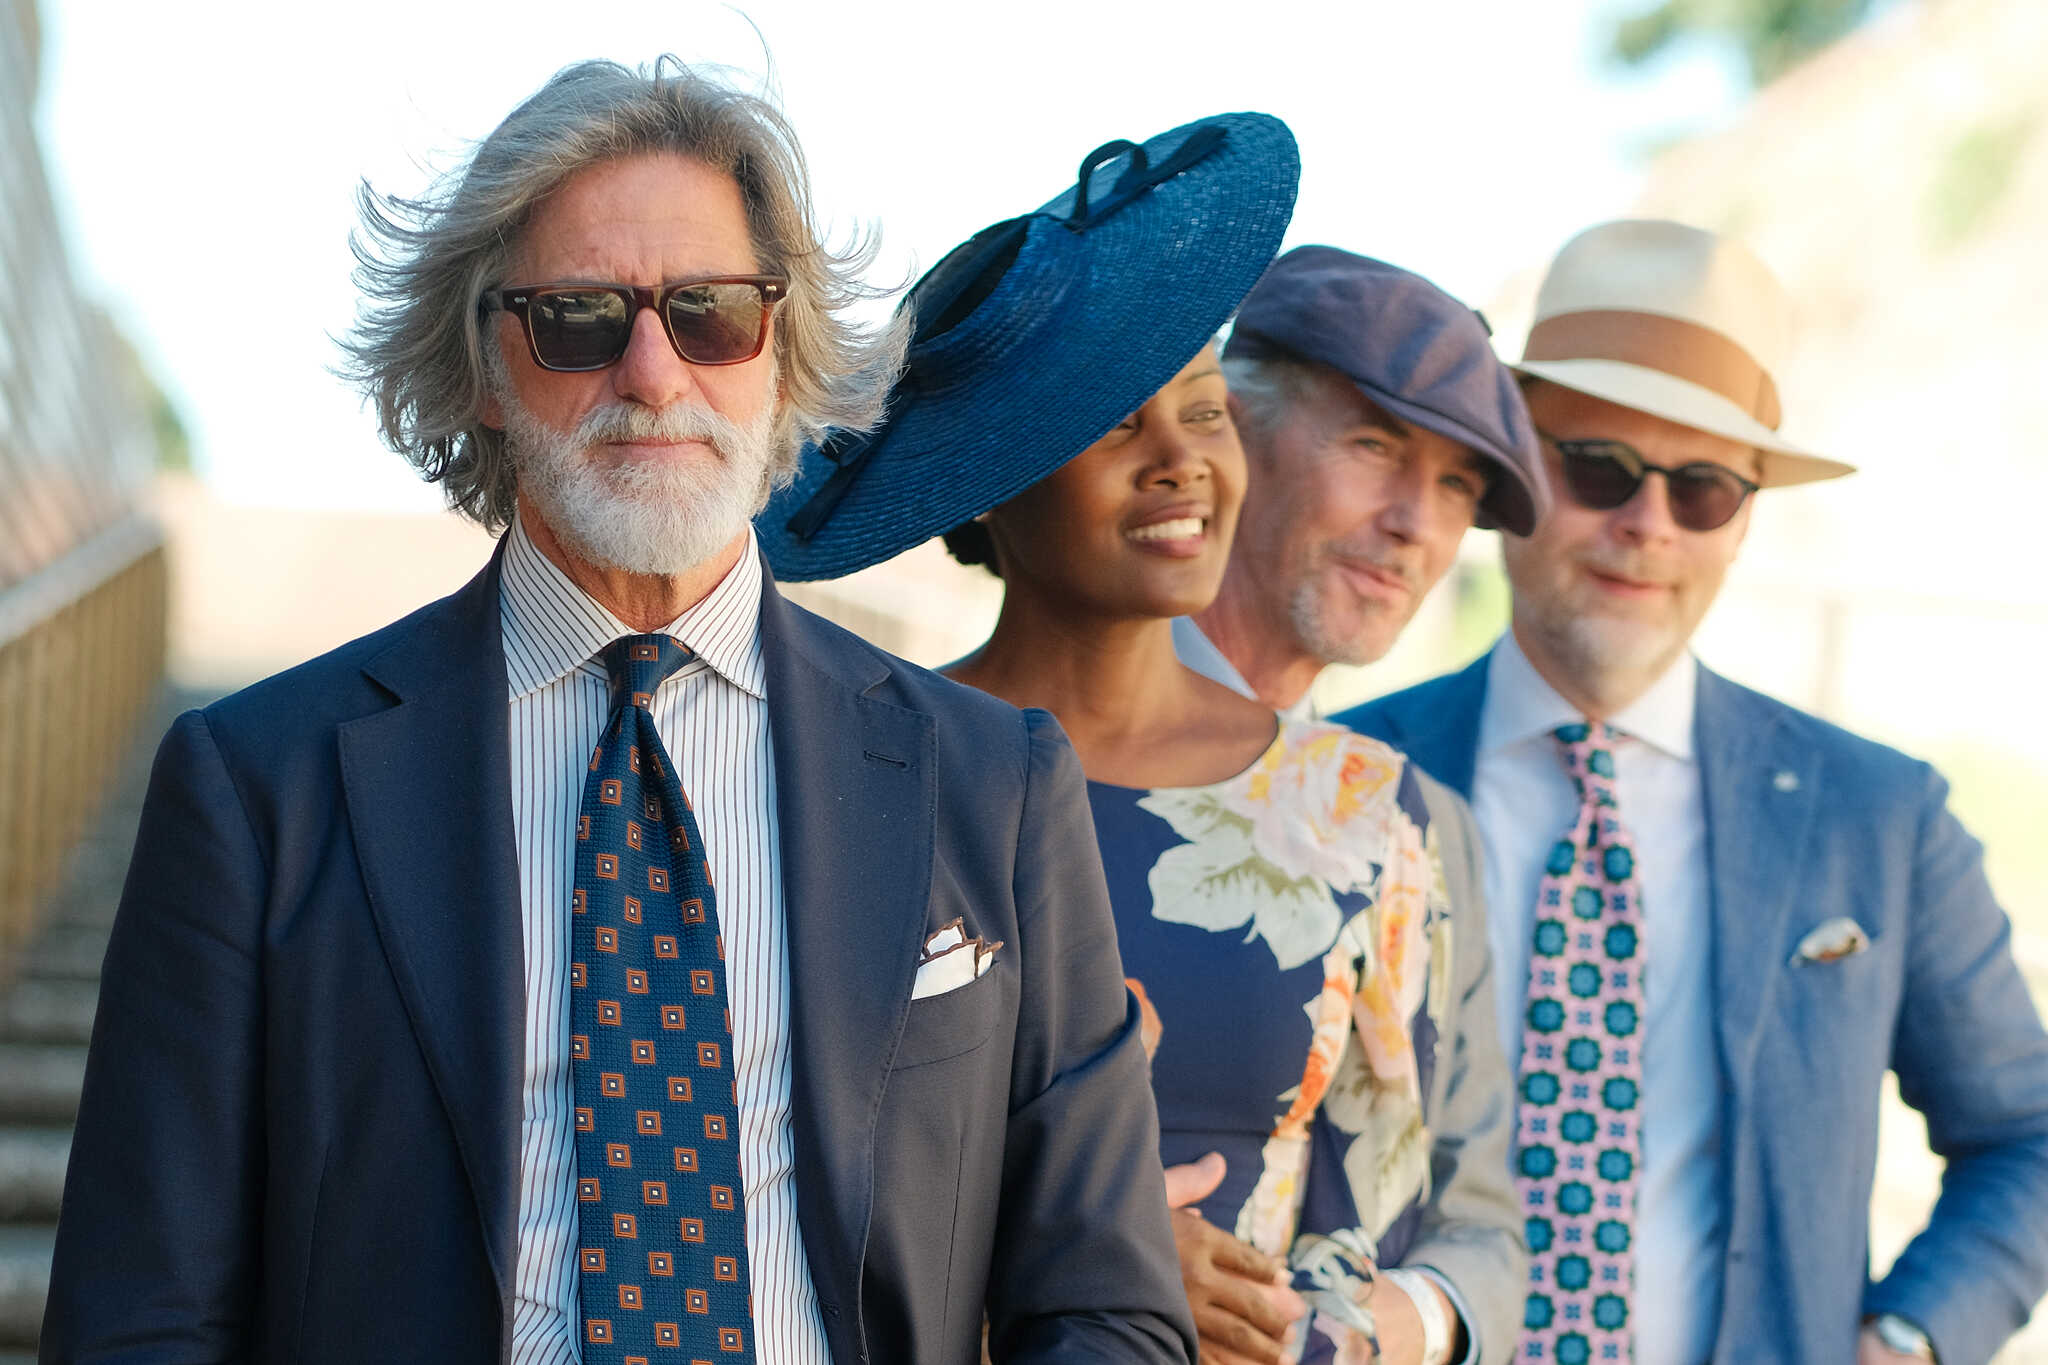 Photos From Pitti Uomo 100th in Florence by Alessandro Michelazzi Photographer